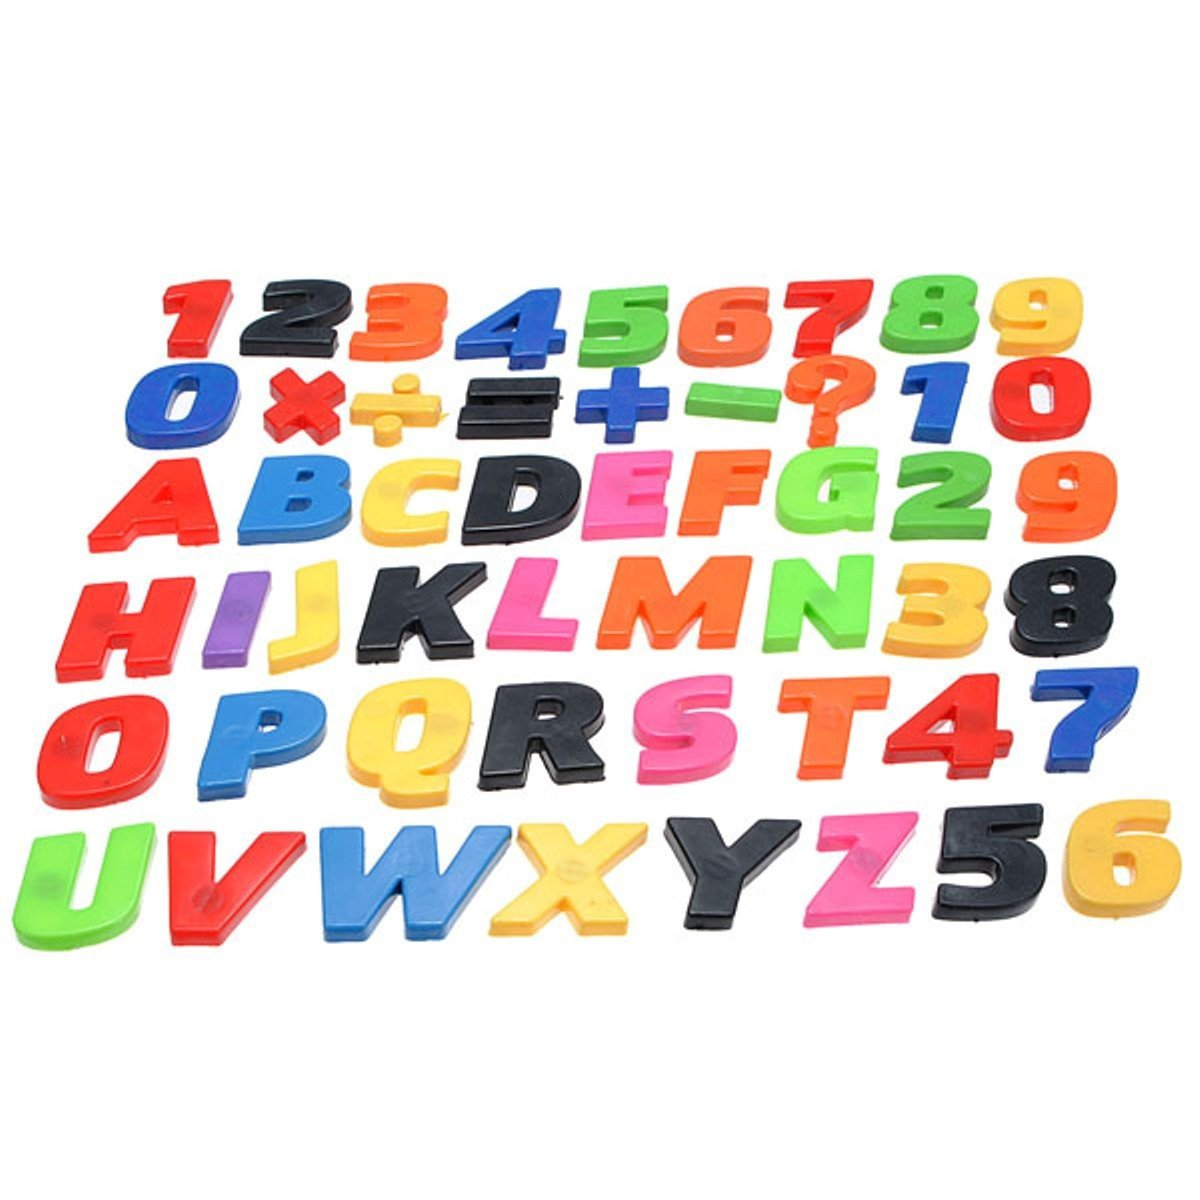 Cheap Magnet Toys For Toddlers Find Magnet Toys For Toddlers Deals